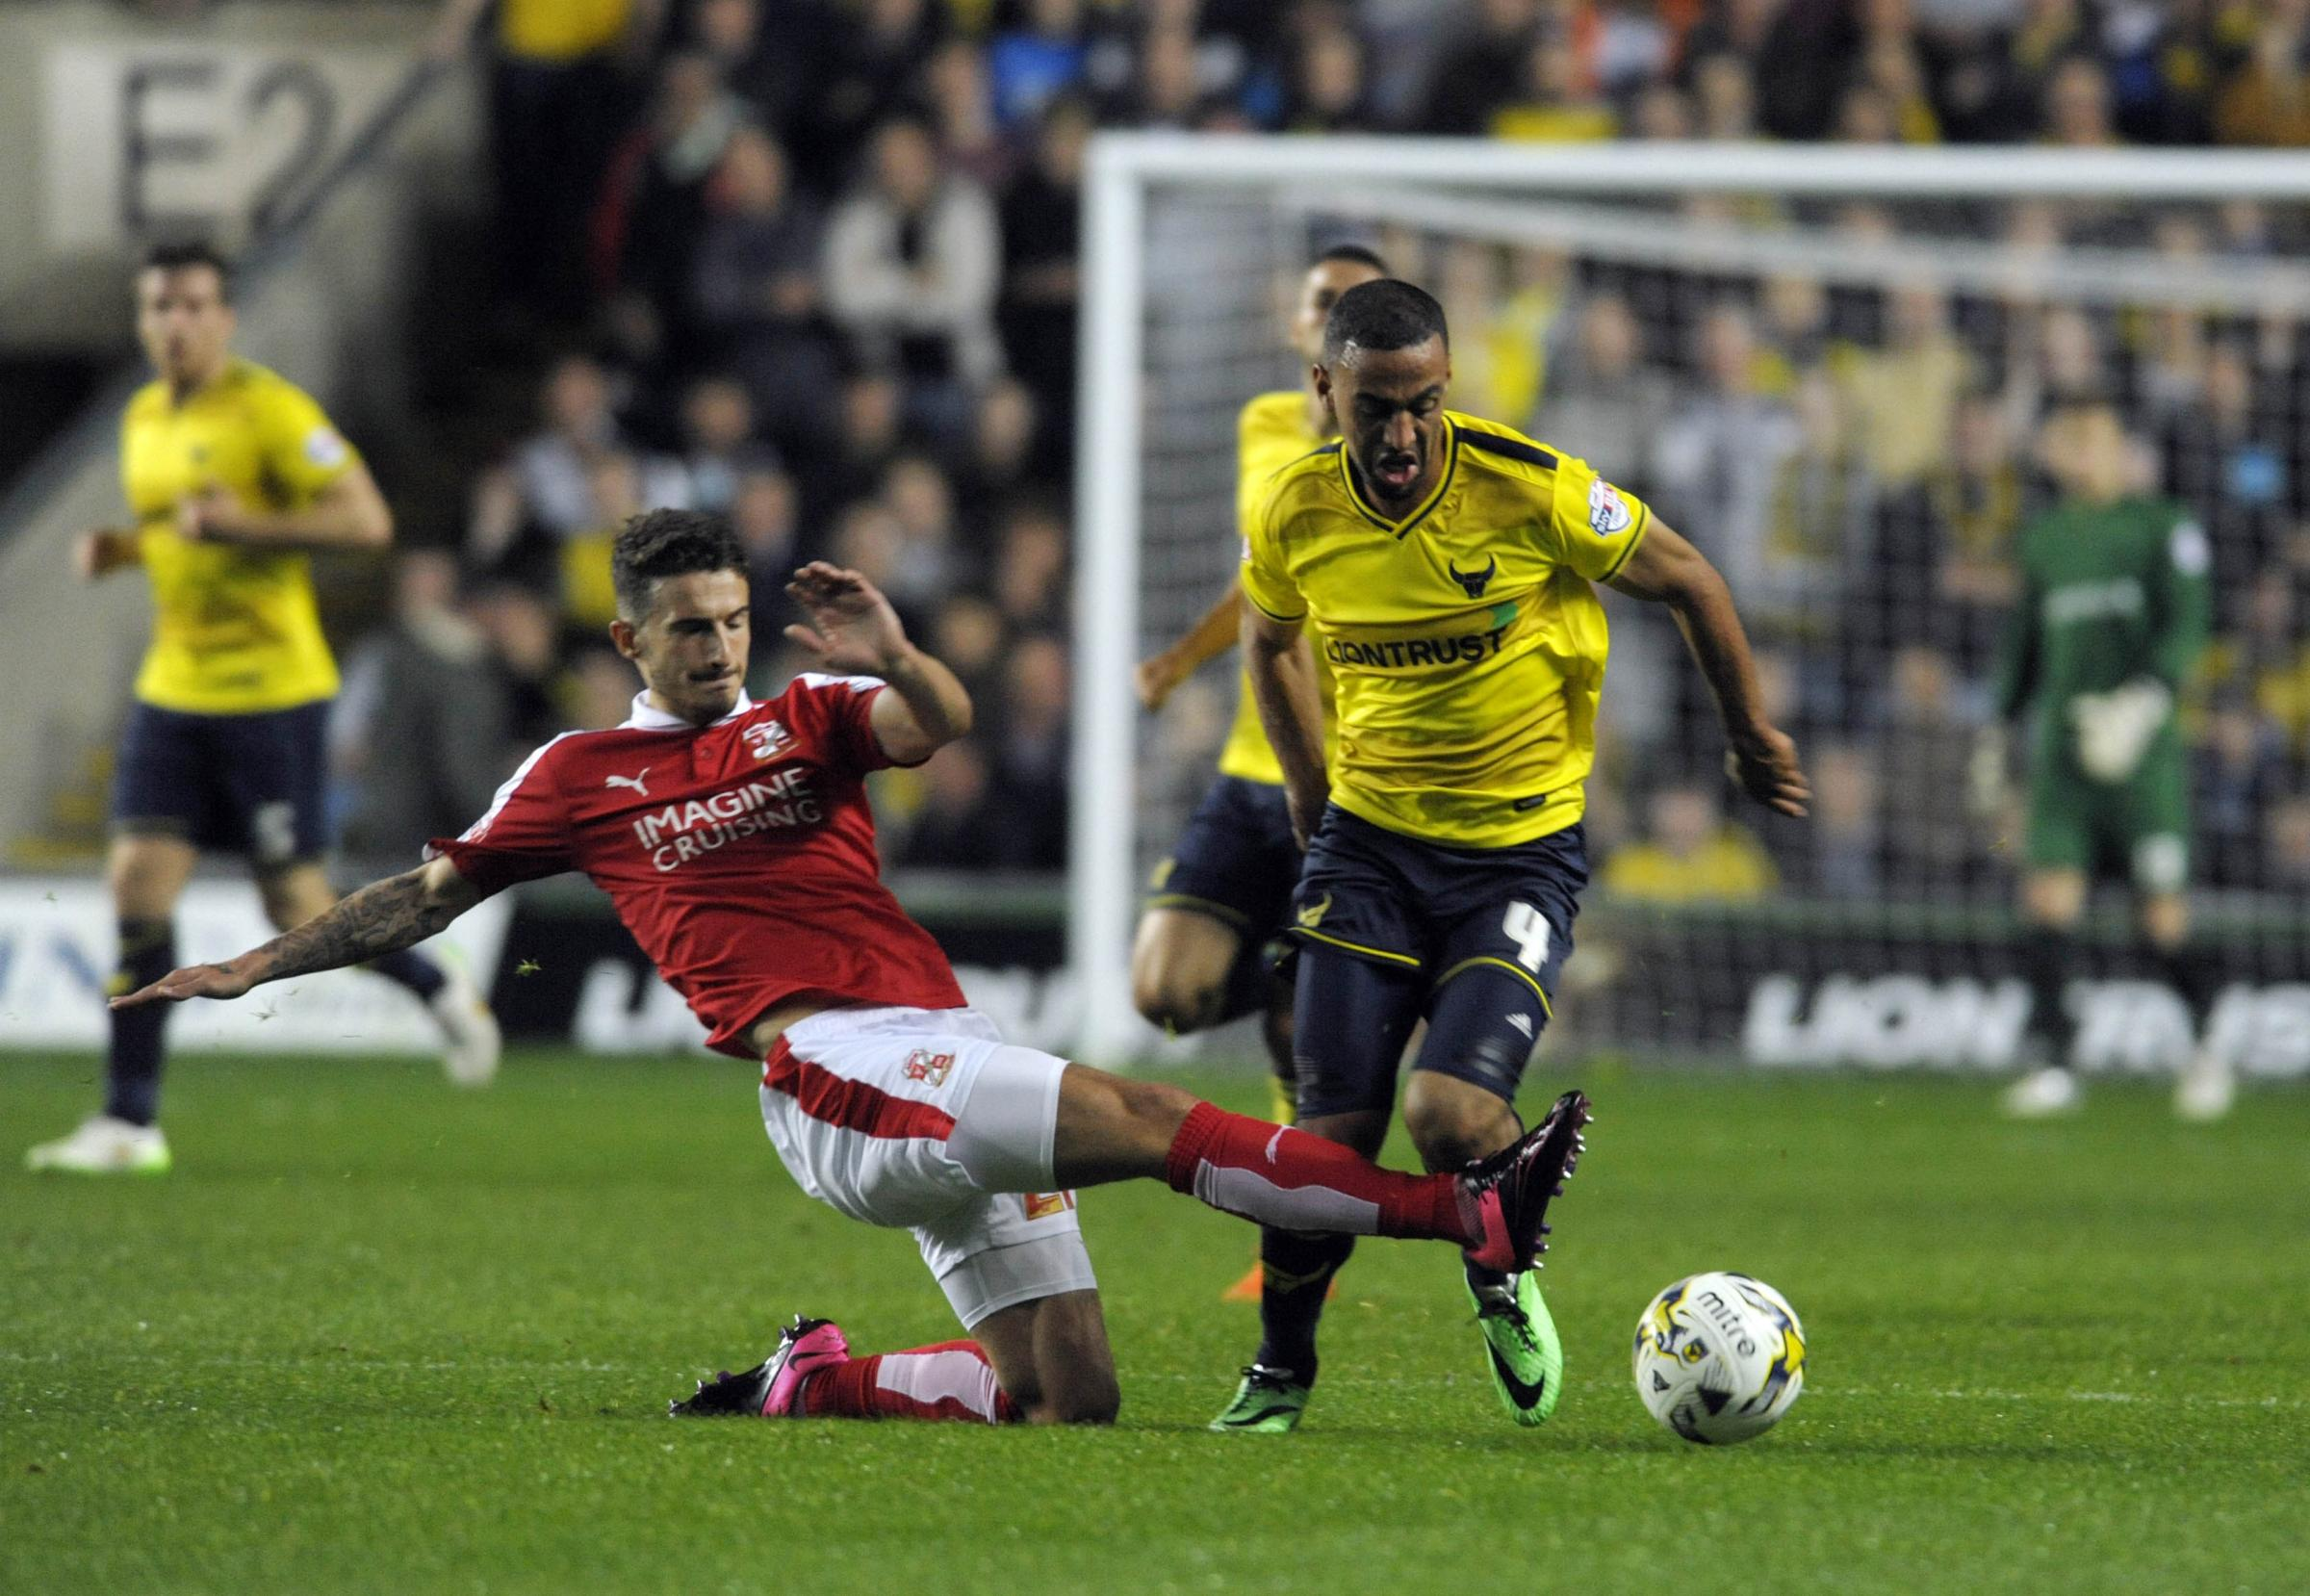 Kemar Roofe breaks clear in United's JPT win over Swindon Town last year